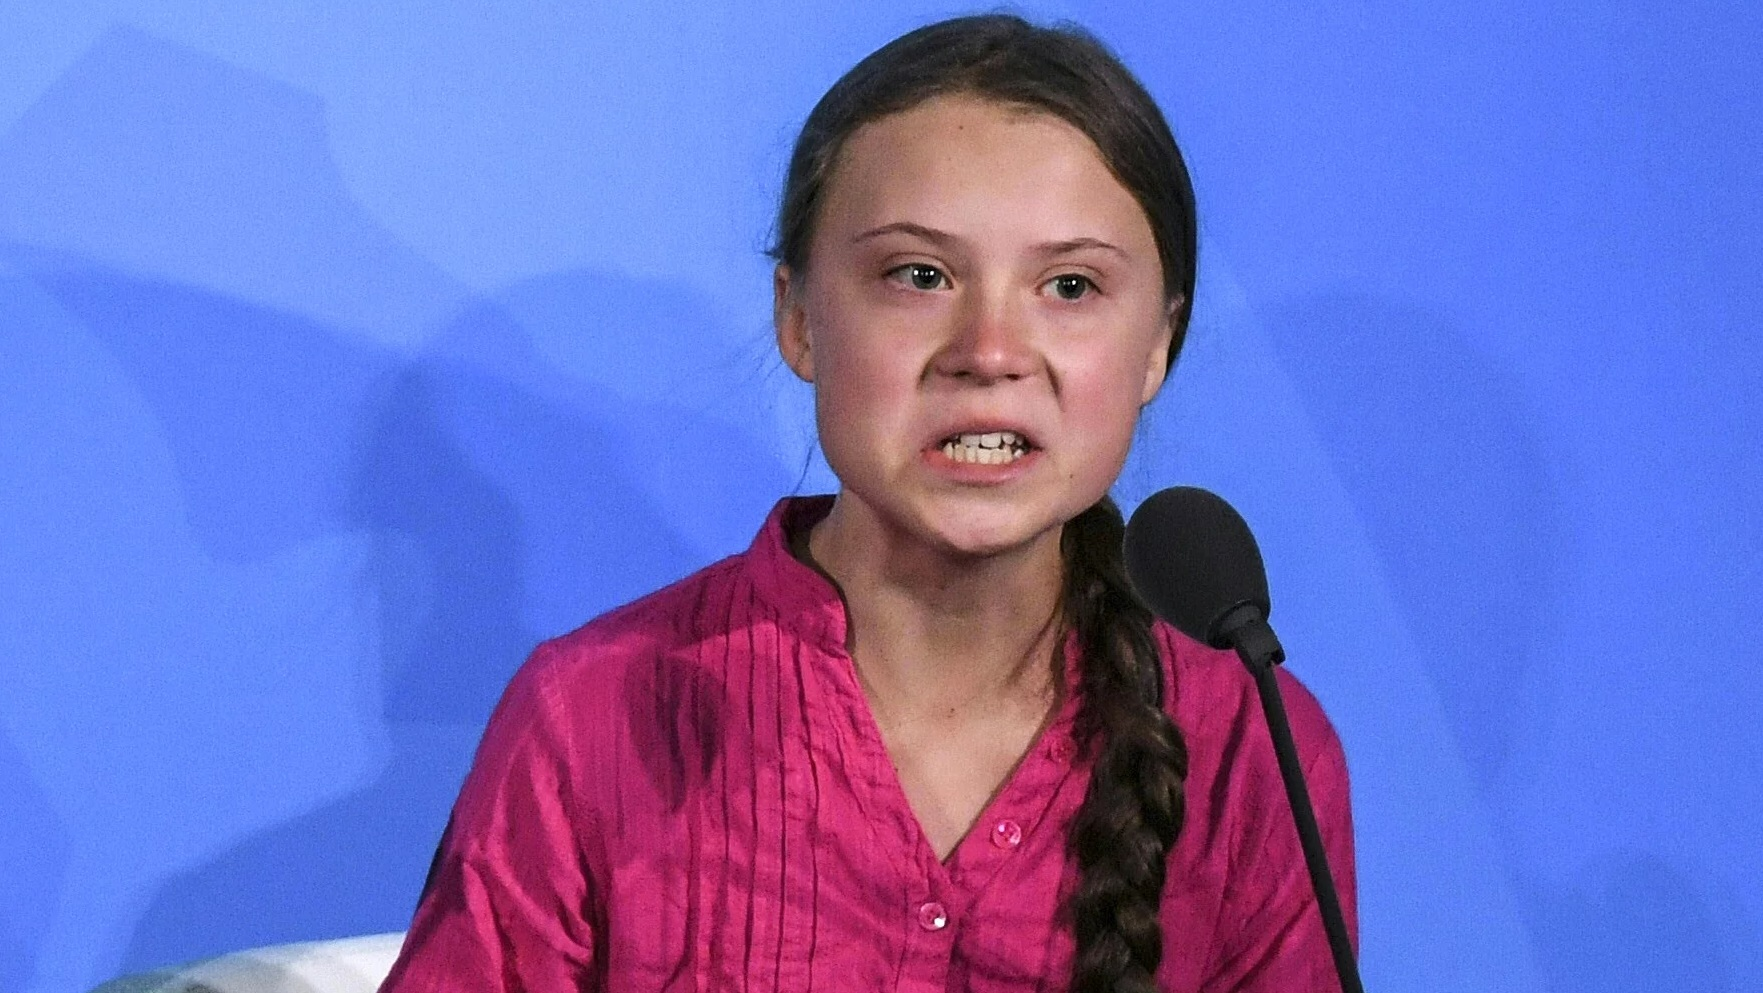 The Greta Thunberg phenomenon is nothing but a money-making scheme set up by her handlers to profit from climate hysteria